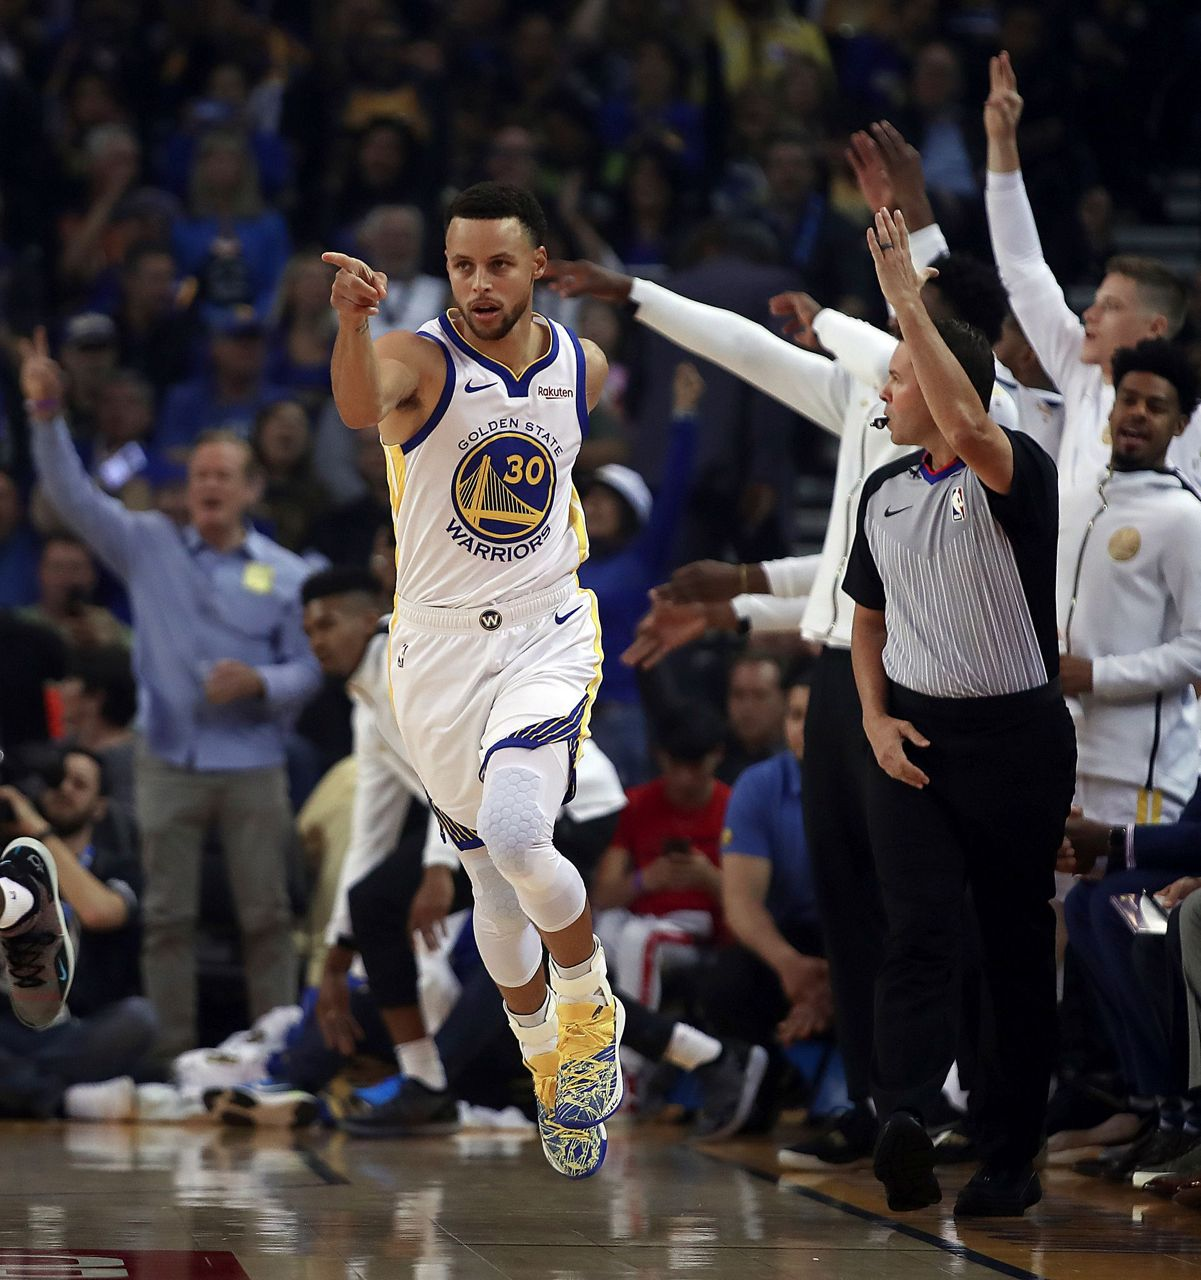 Warriors Full Game Highlights Game 3: Curry, Durant Lead Warriors Past Thunder In Festive Opener